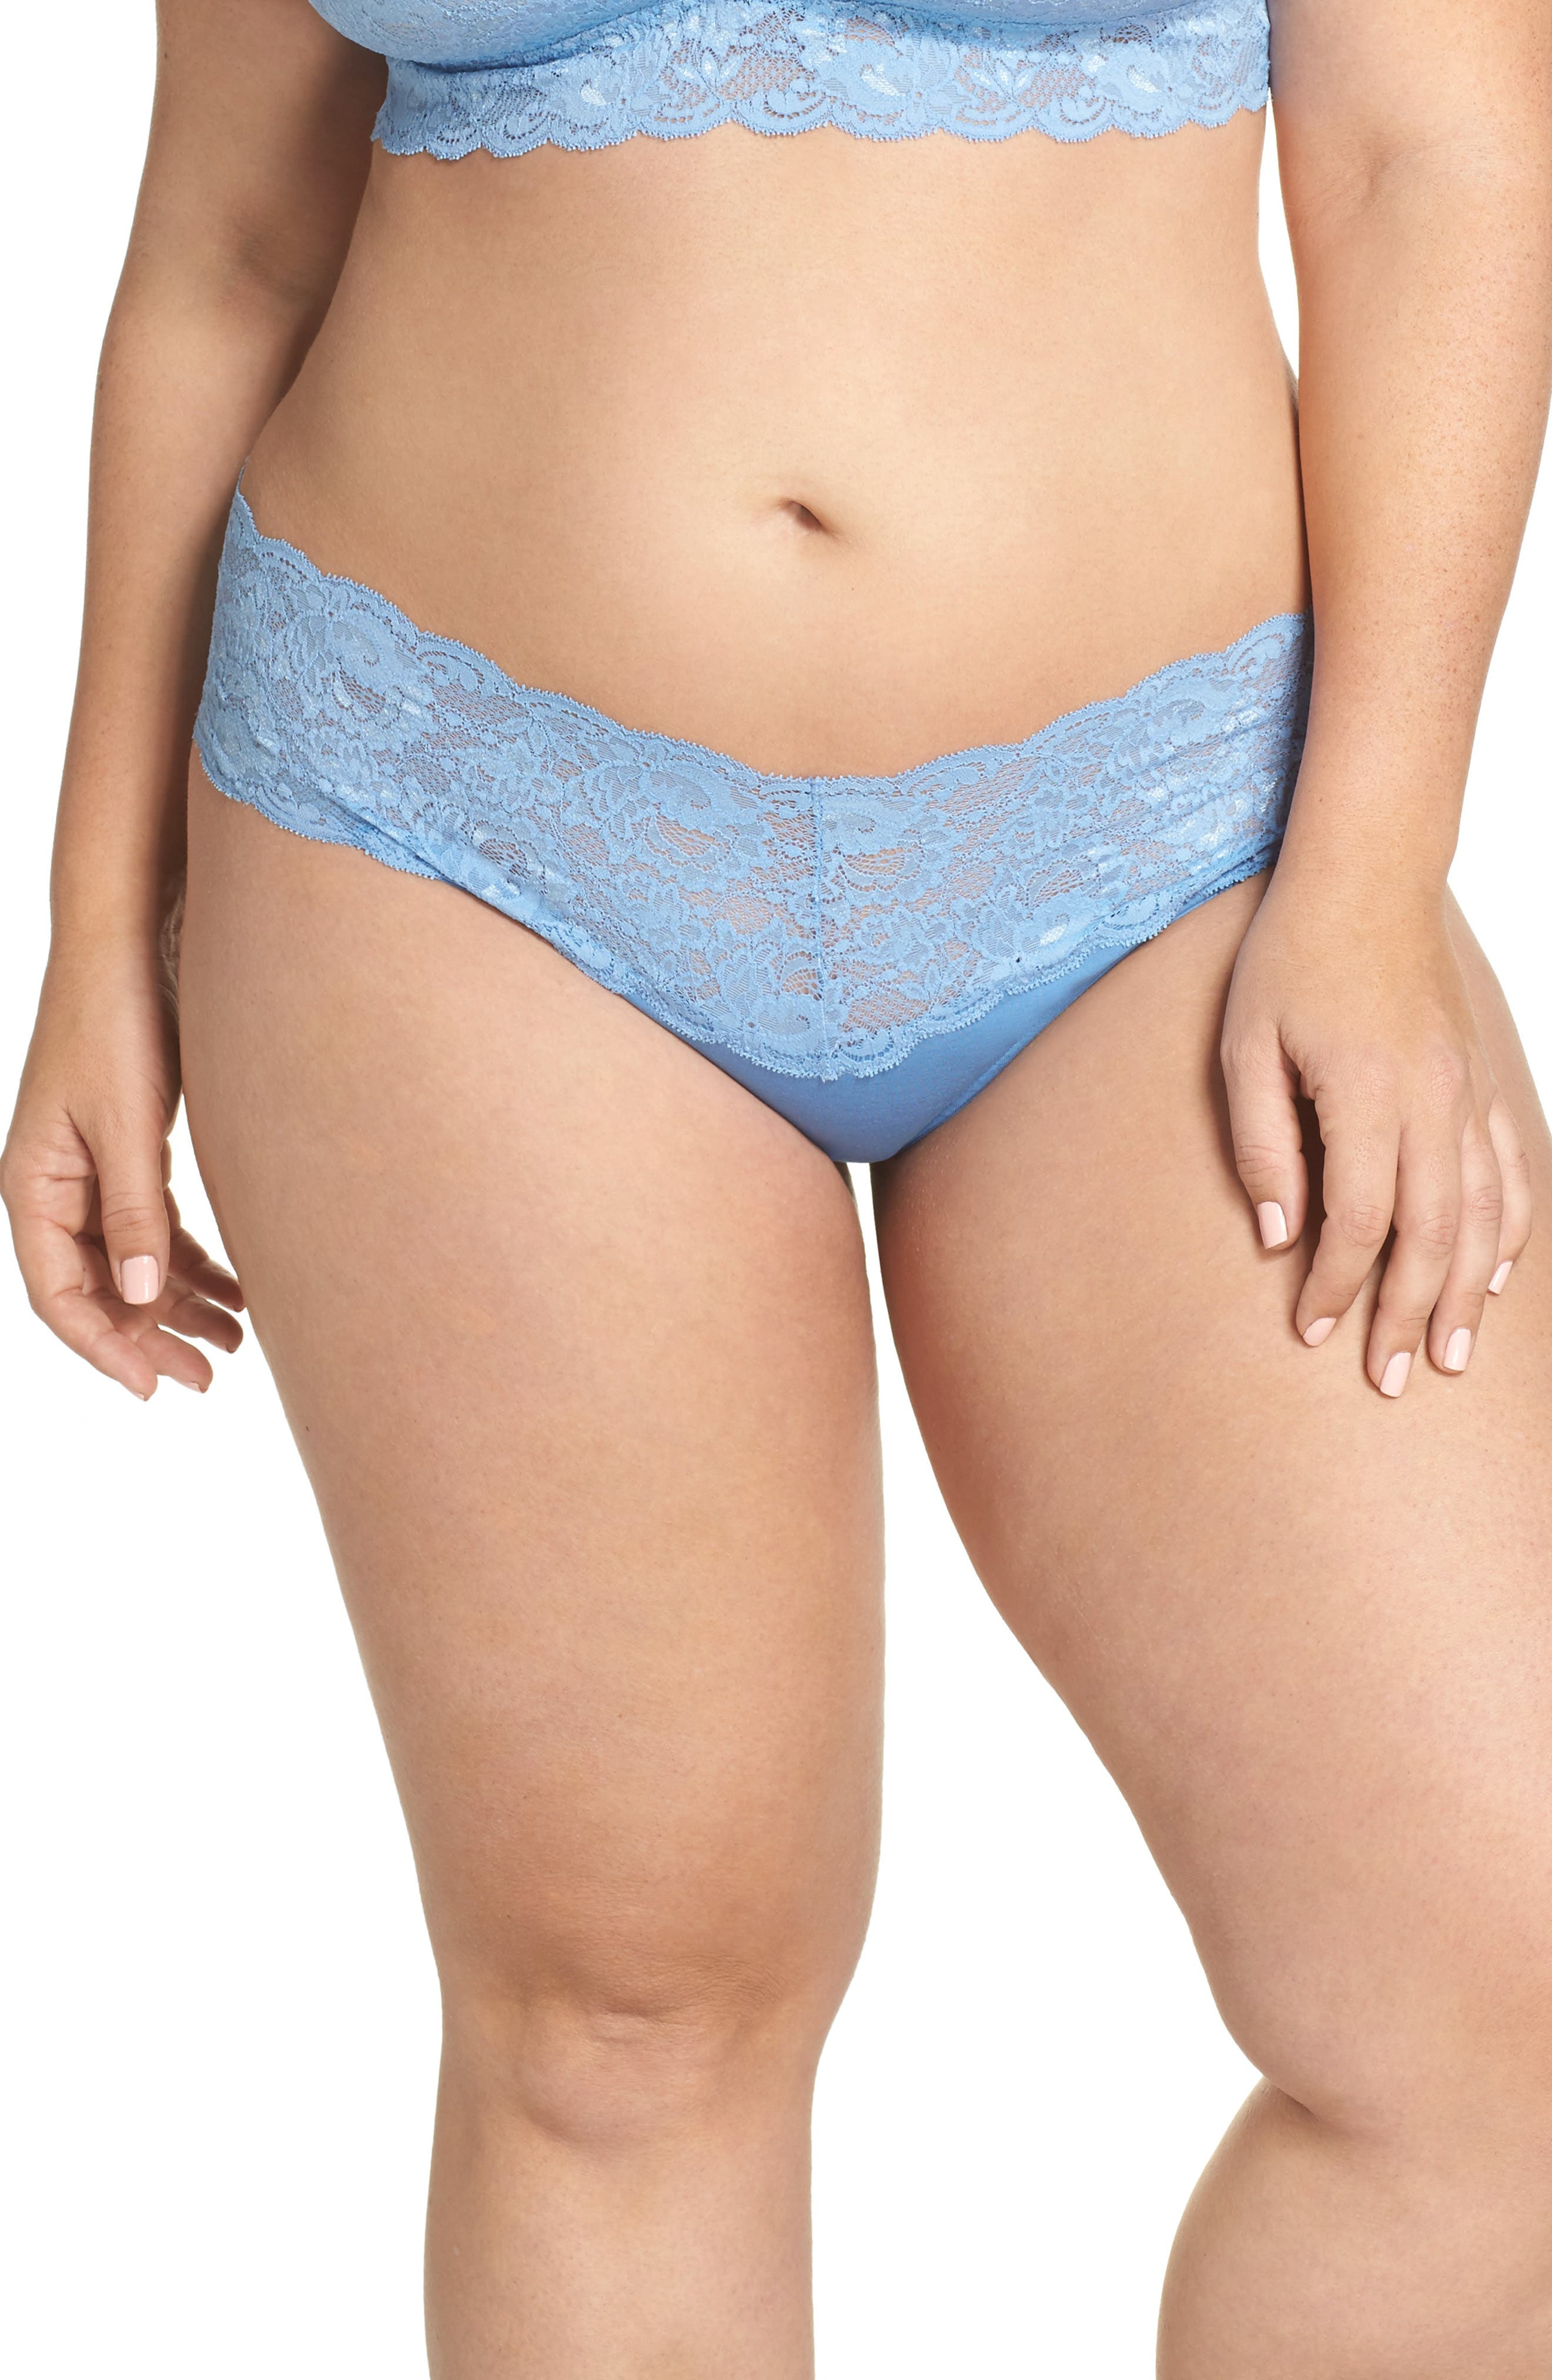 'Never Say Never Lovely' Thong,                         Main,                         color, Jewel Blue